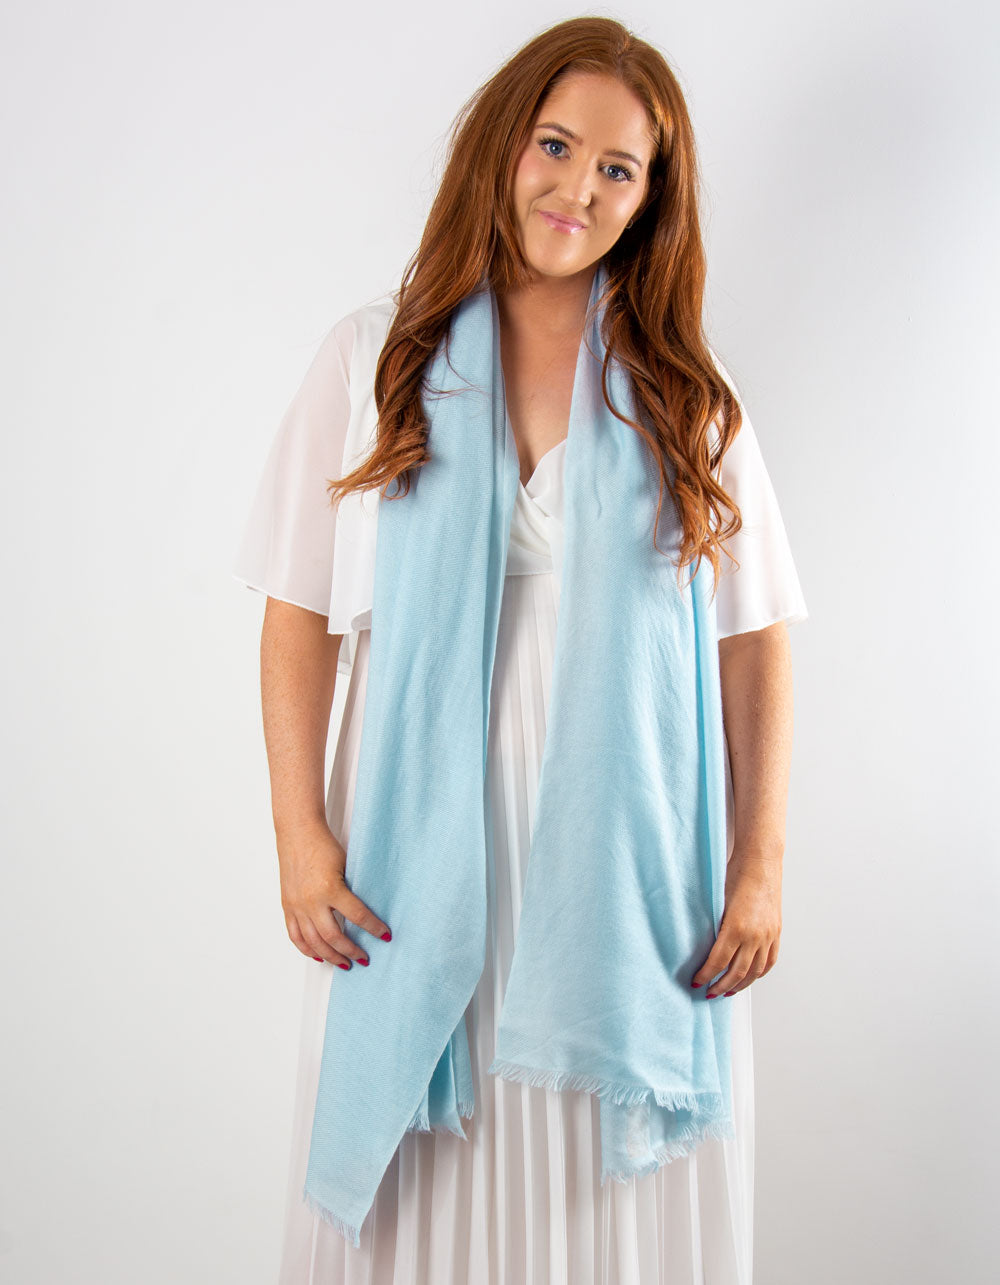 an image showing a cashmere wedding pashmina in baby blue